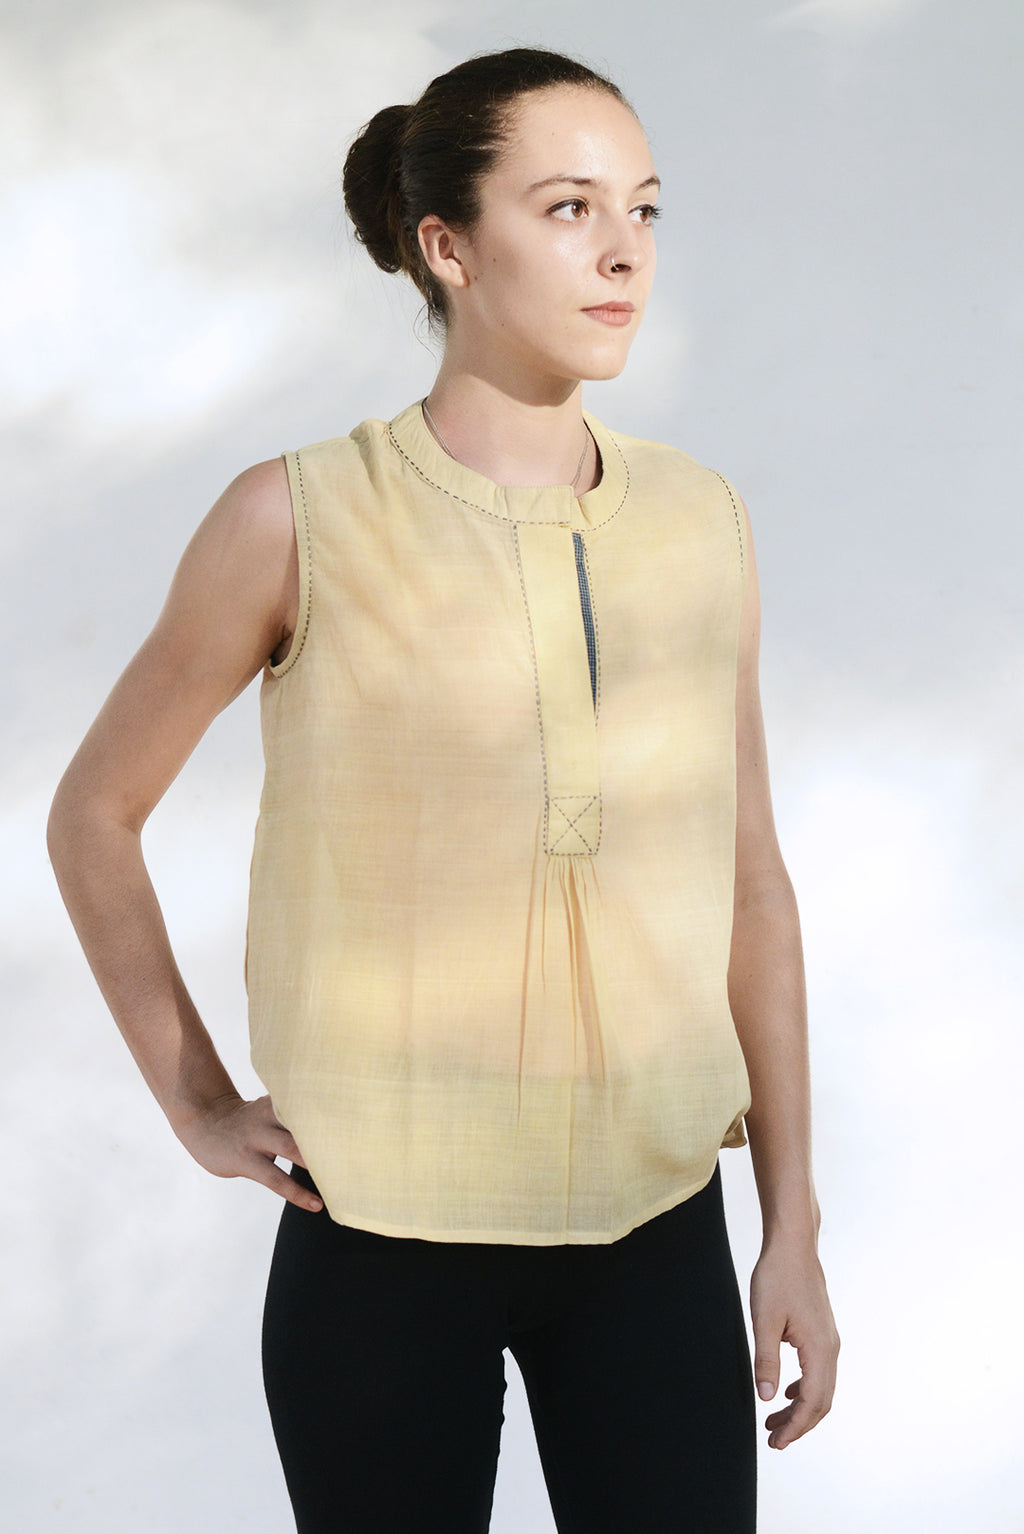 Neem dyed Organic Cotton Top - AHELI